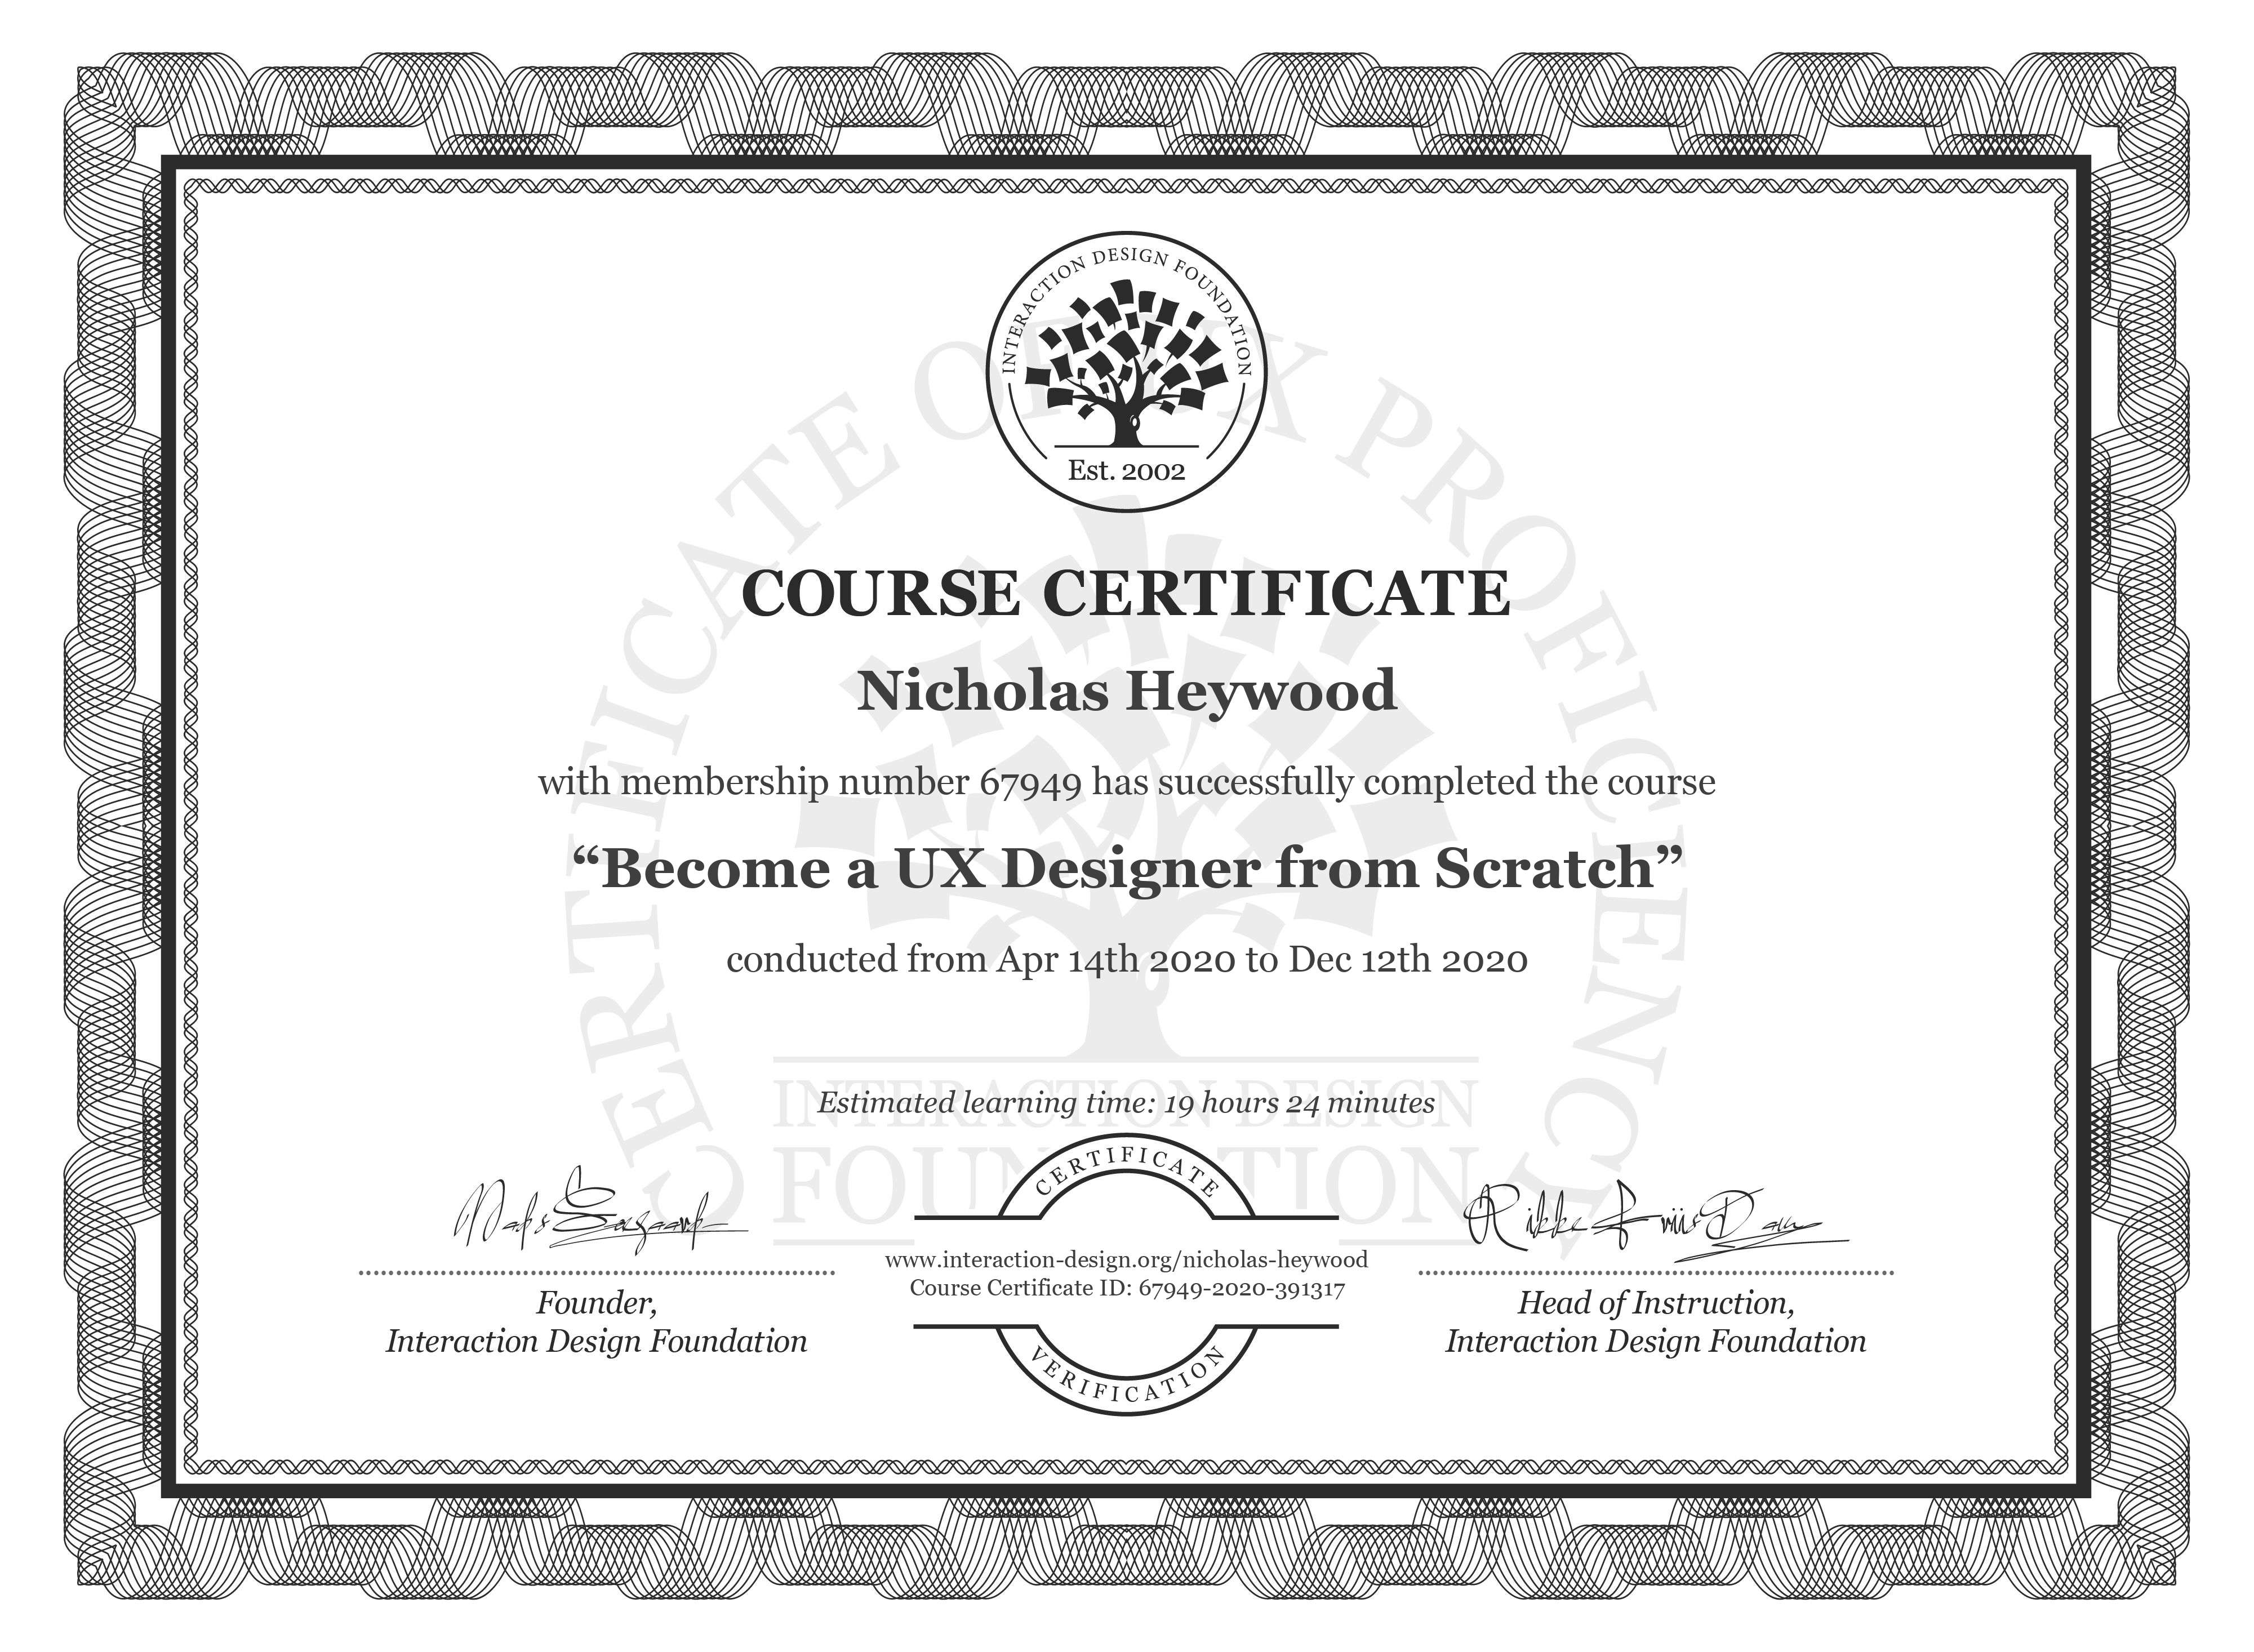 Nicholas Heywood's Course Certificate: User Experience: The Beginner's Guide